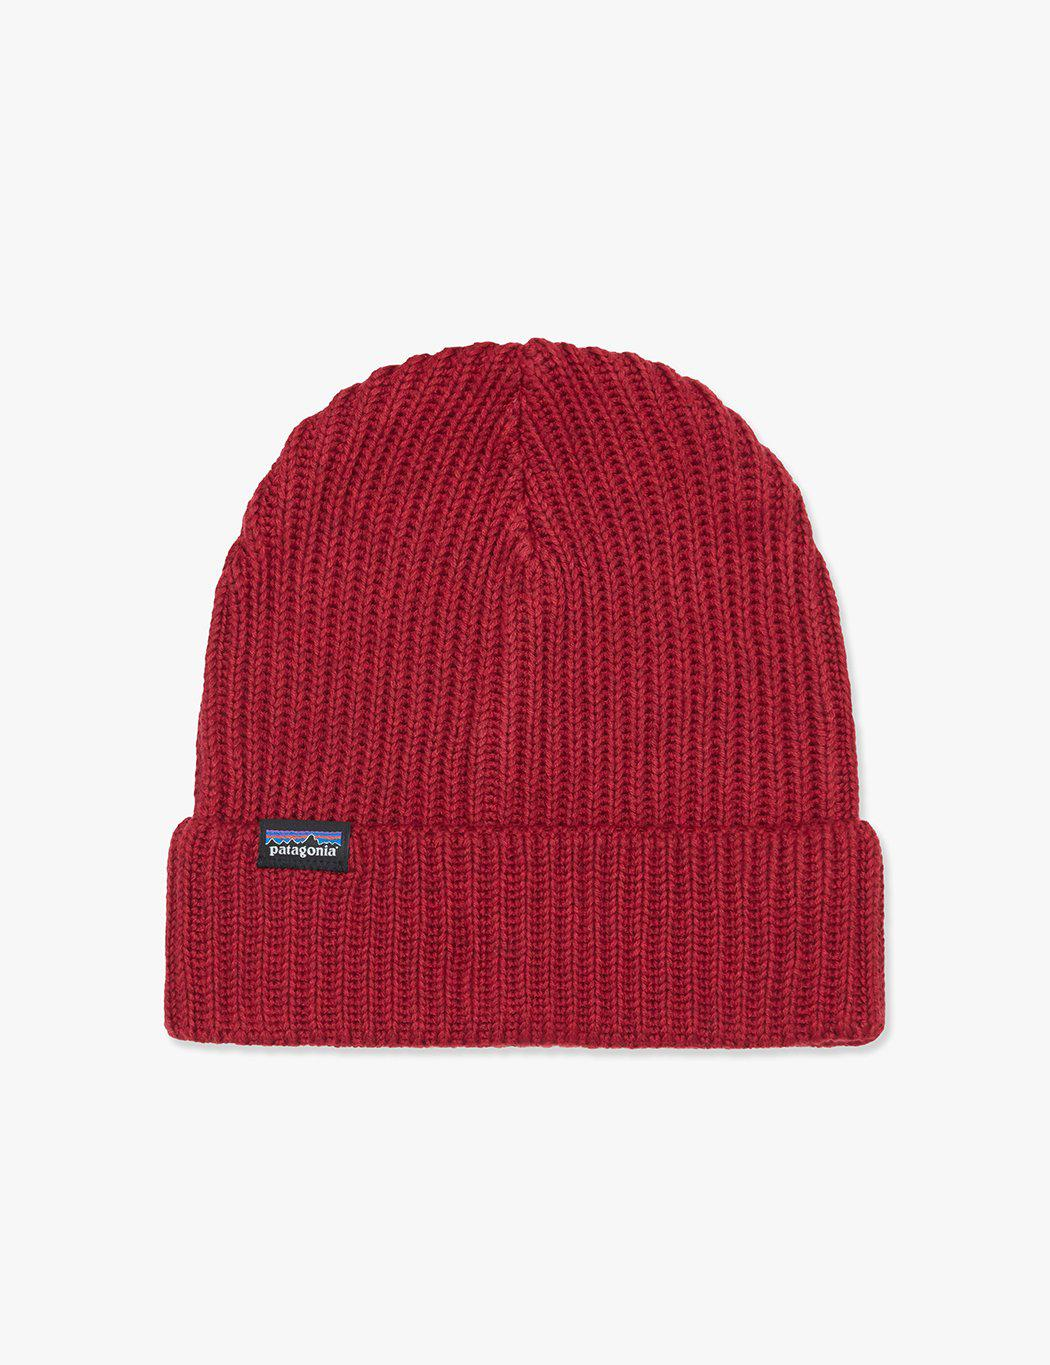 3bfd62c5 Patagonia - Red Fisherman's Rolled Beanie Hat for Men - Lyst. View  fullscreen